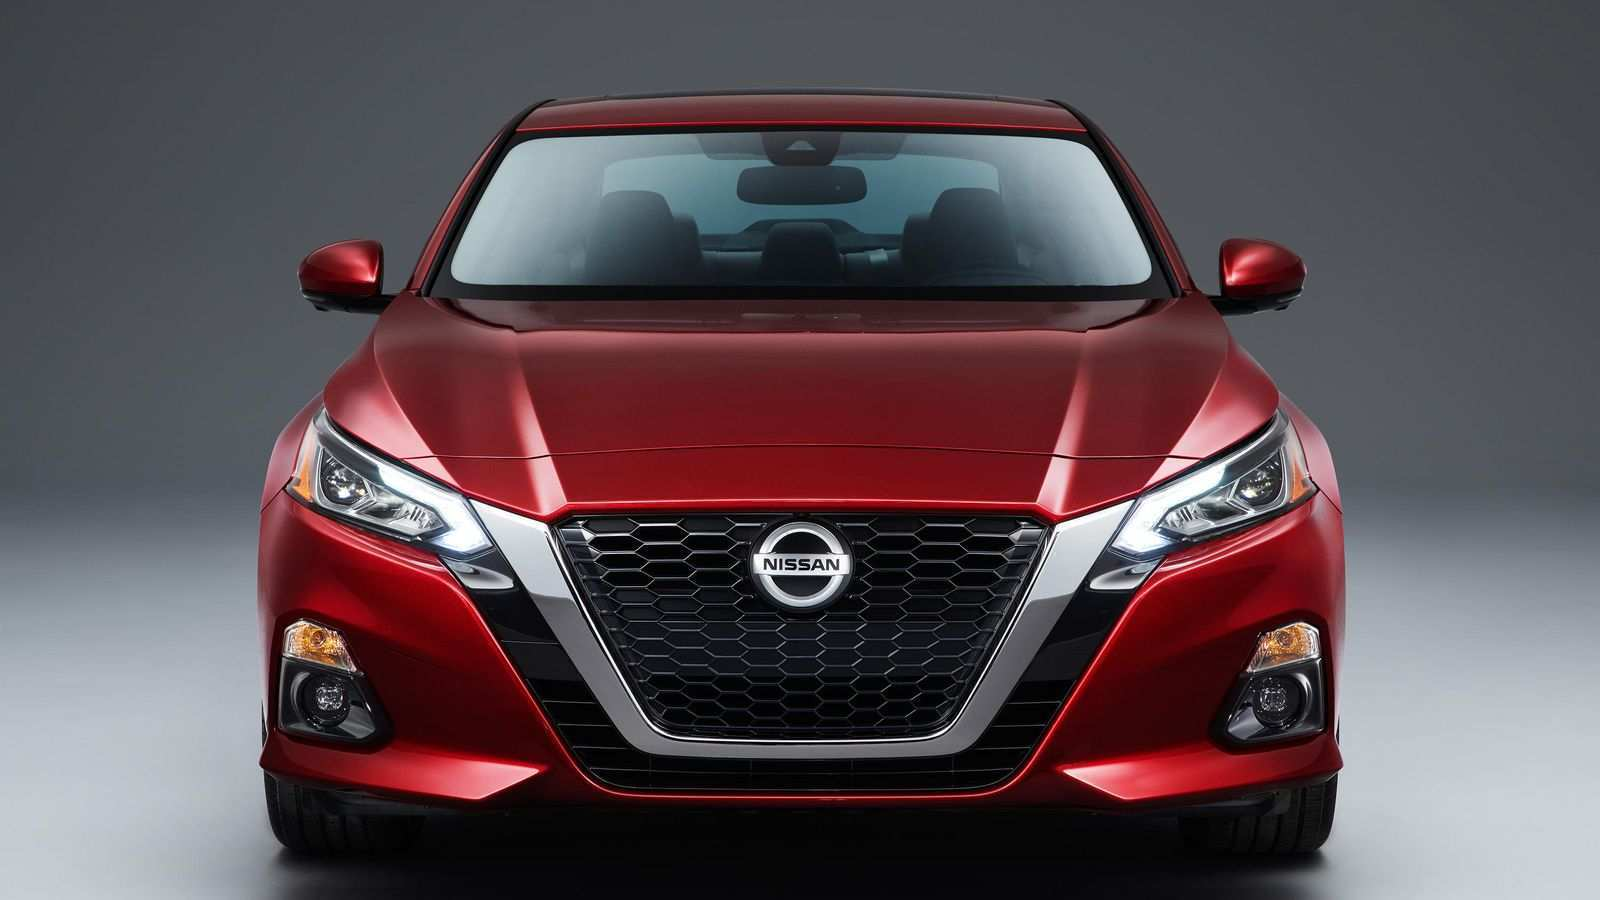 35 New The 2019 Nissan Altima Interior Redesign And Concept Engine for The 2019 Nissan Altima Interior Redesign And Concept